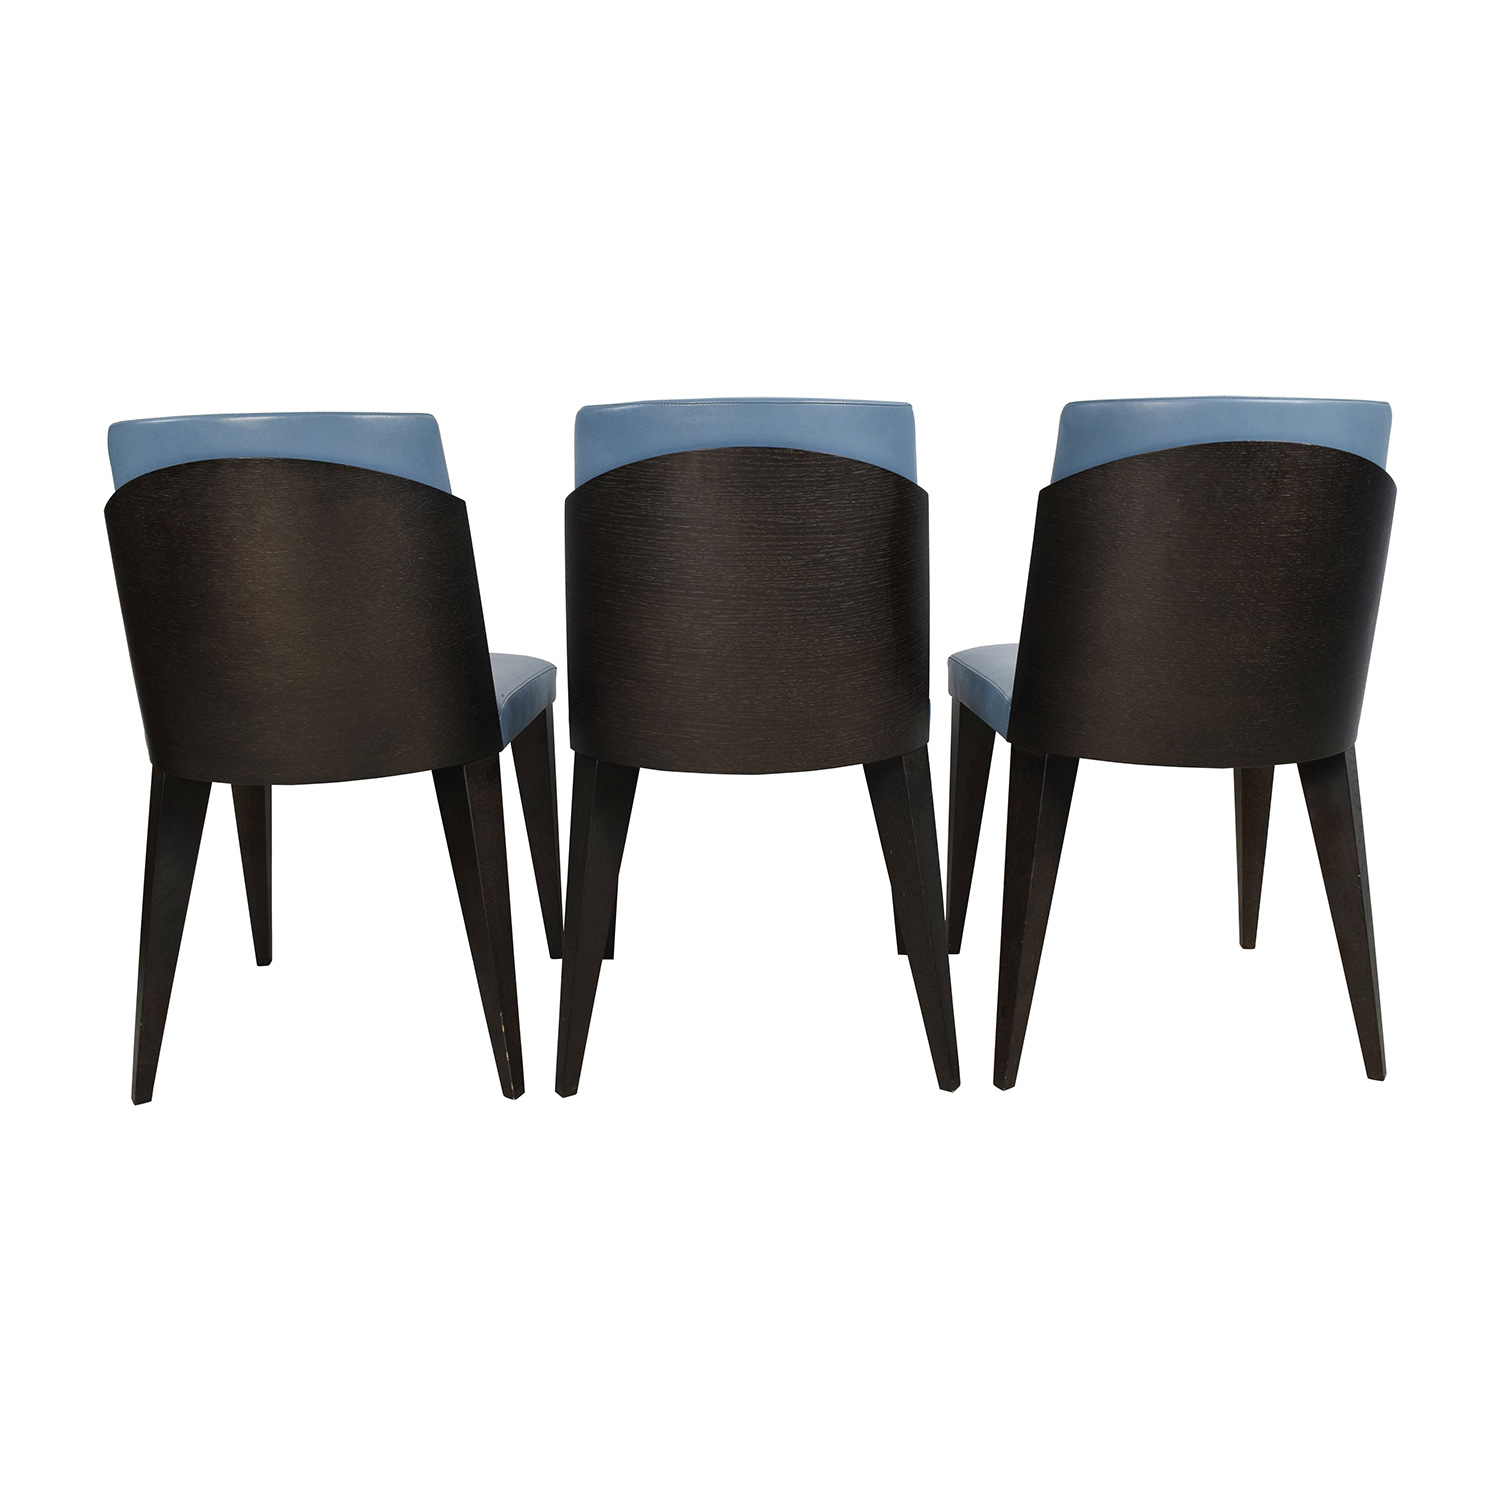 Blue Leather Dining Chairs 90 Off Potocco Potocco Blue Leather Dining Chairs Chairs